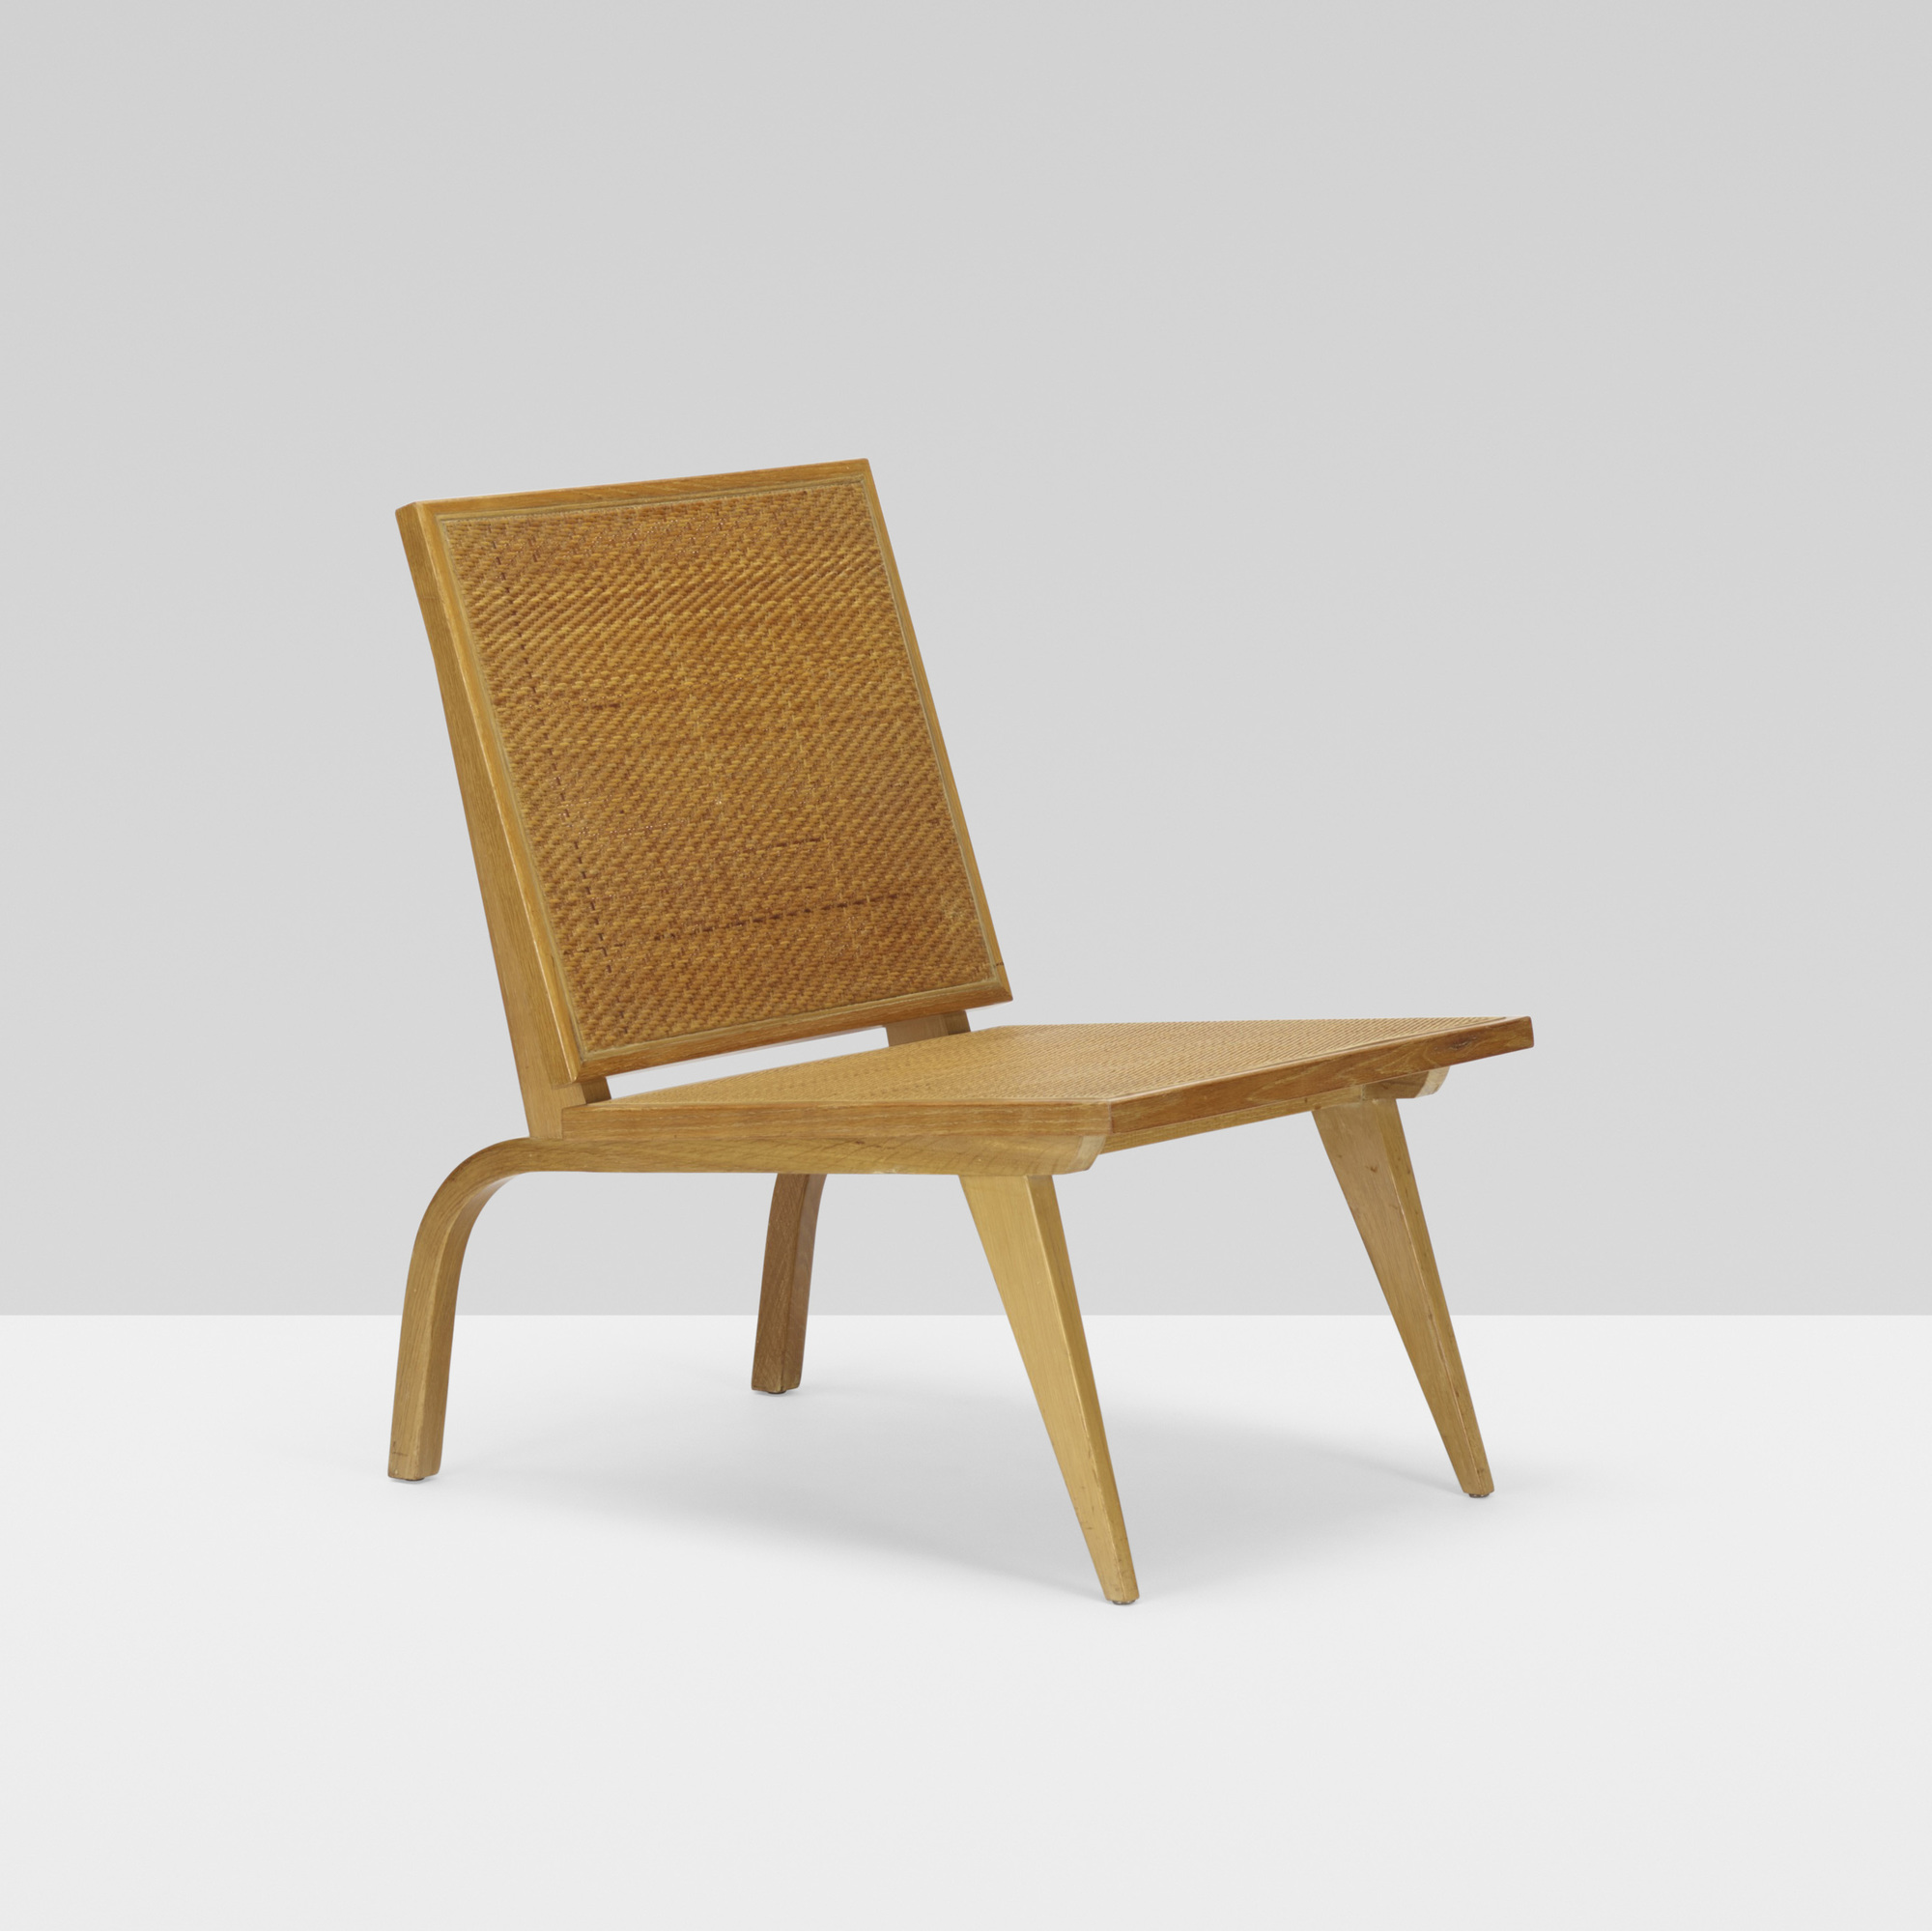 350: Edward Durell Stone / lounge chair (3 of 4)